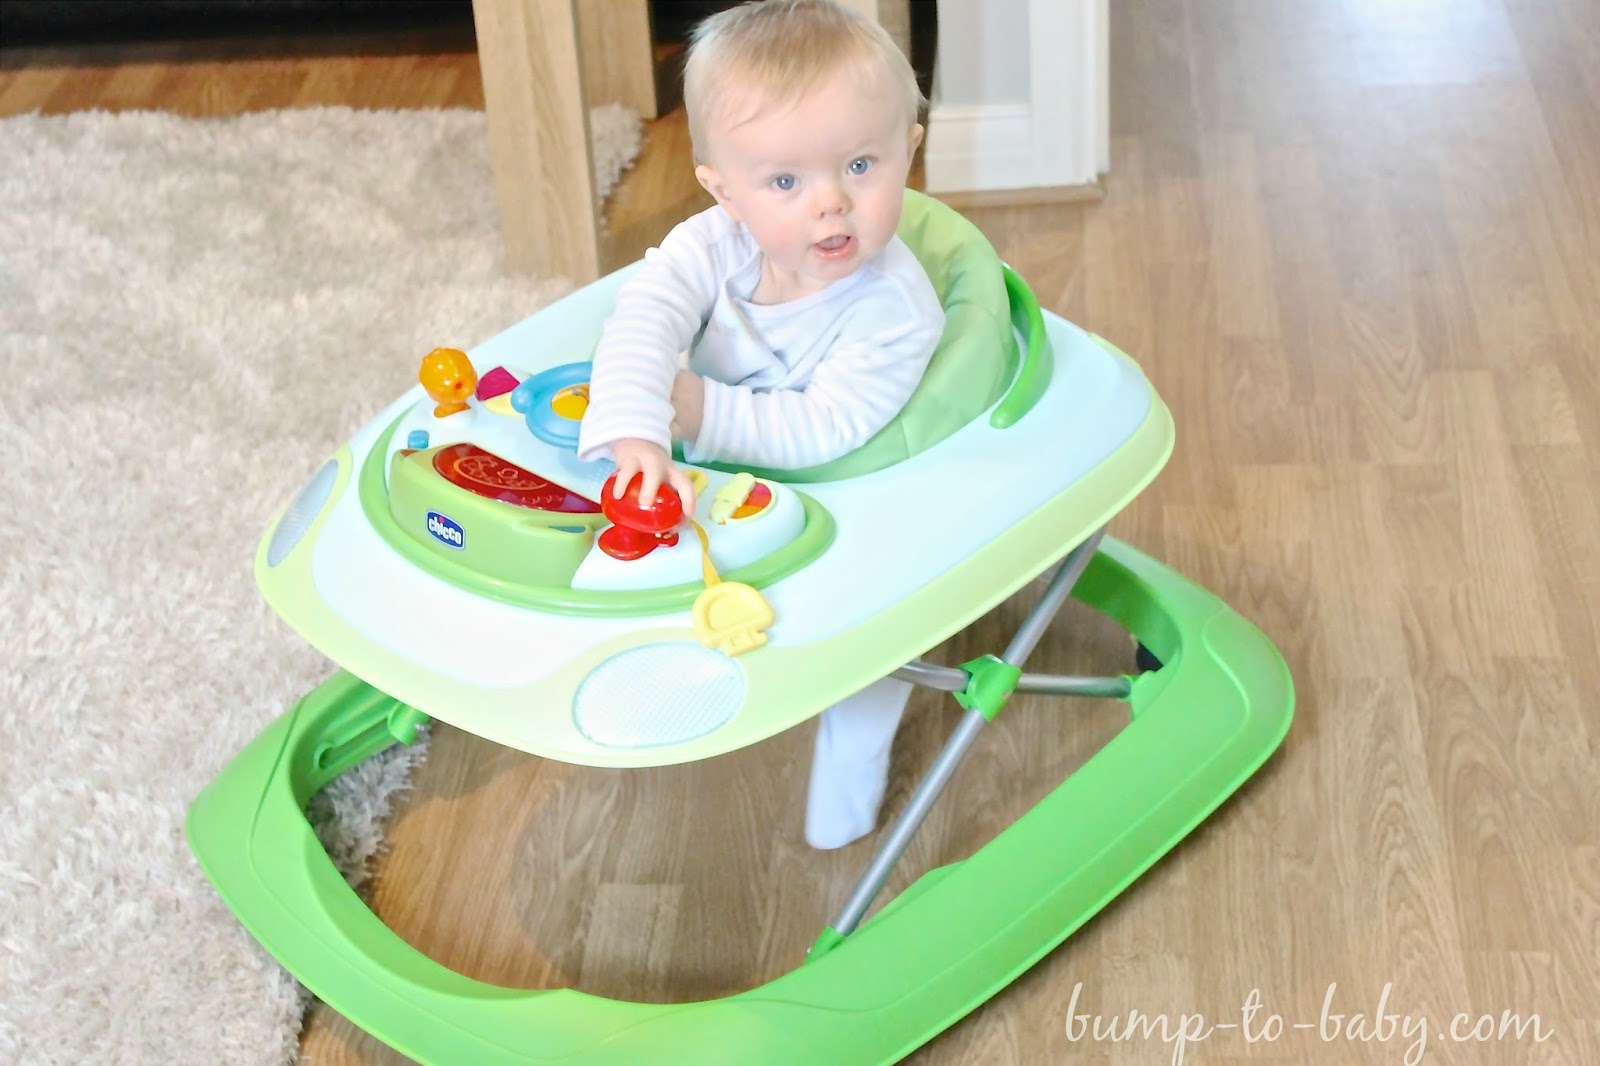 entertainment for babies aged 6 months bump to baby beyond blog uk based family. Black Bedroom Furniture Sets. Home Design Ideas